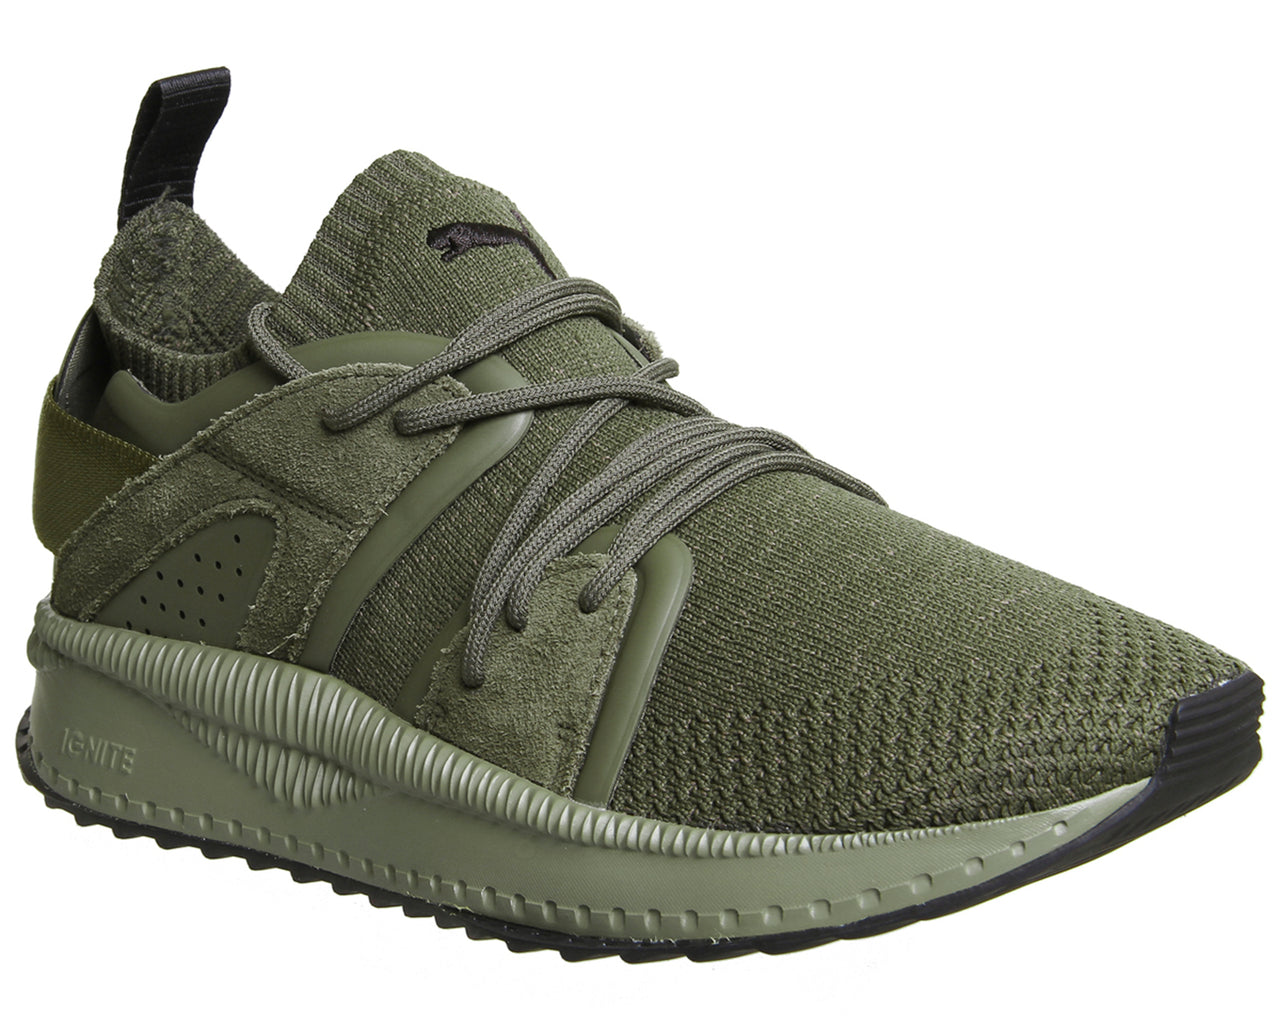 hot-selling authentic pick up hot new products Mens Puma Tsugi Blaze Trainers Olive Night Olive Evoknit